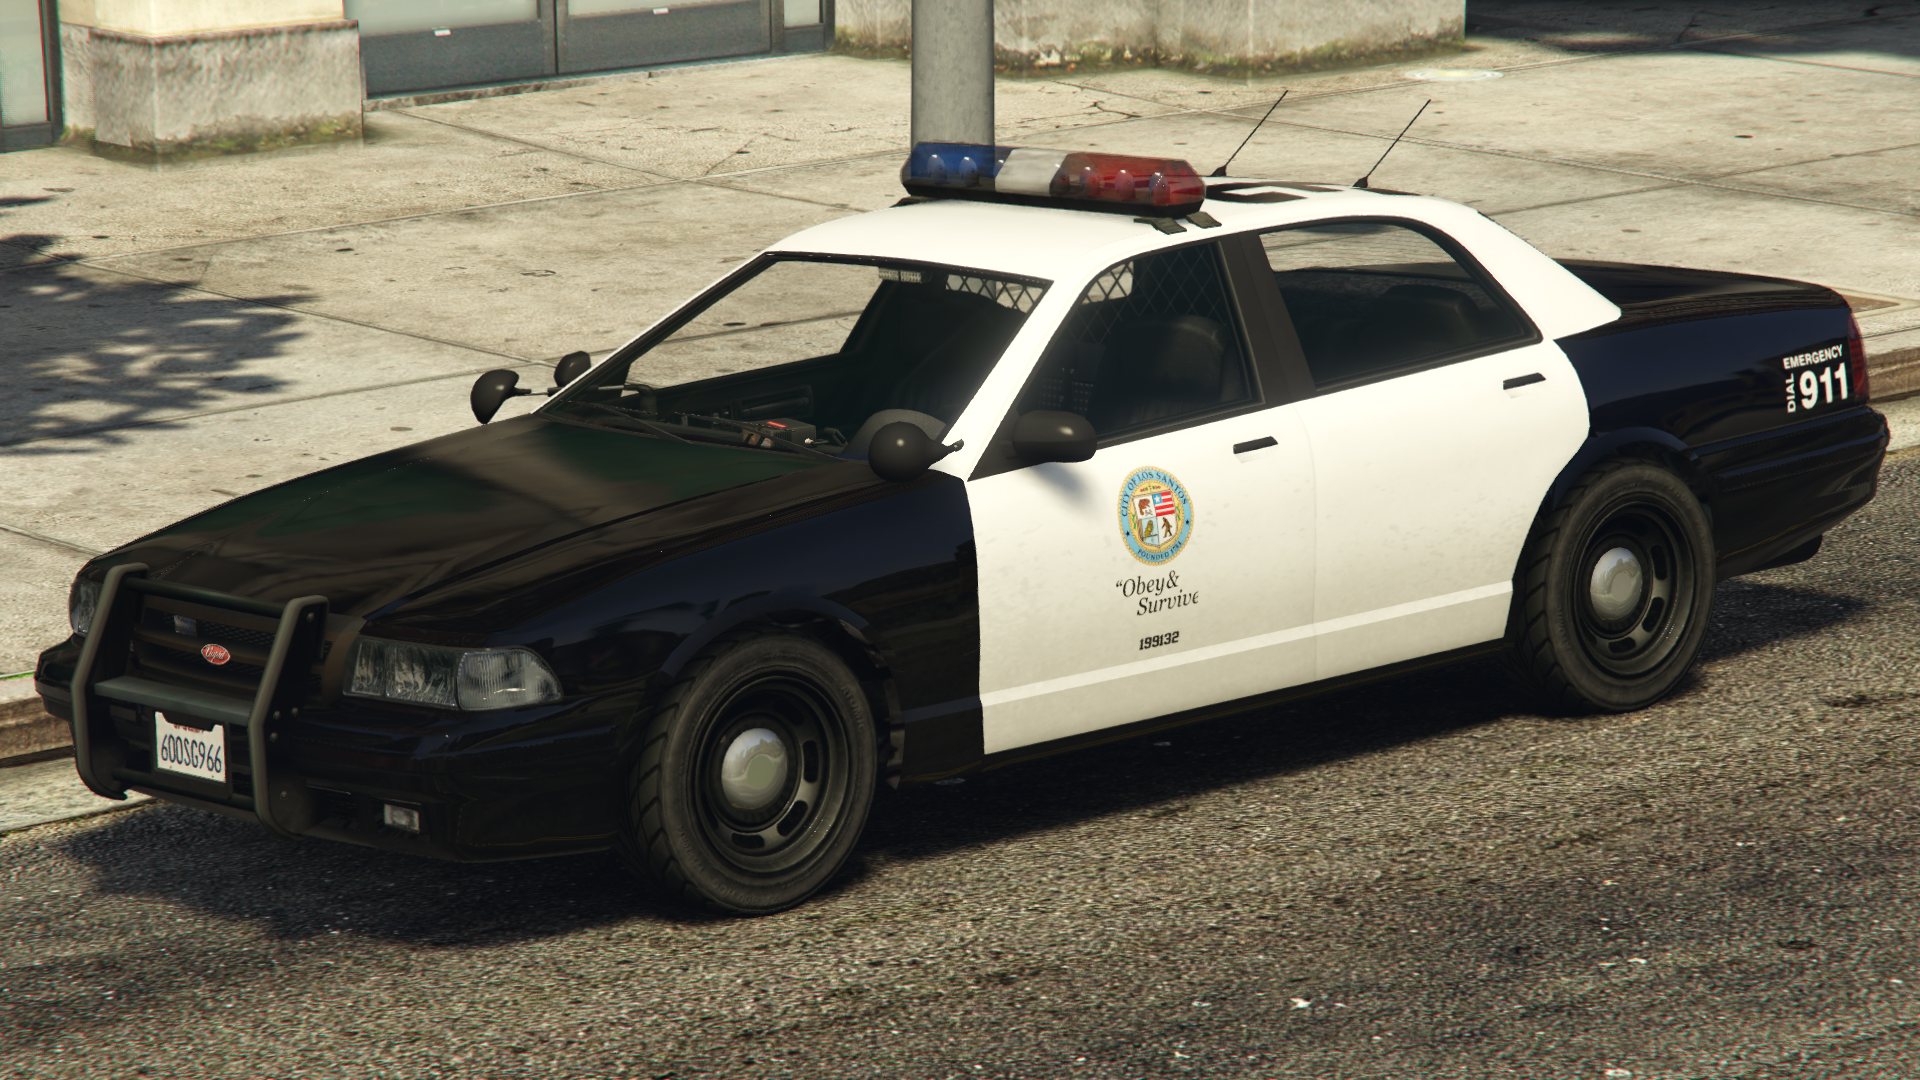 The Nd Generation Stanier Based Police Cruiser In Grand Theft Auto V Rear Quarter View